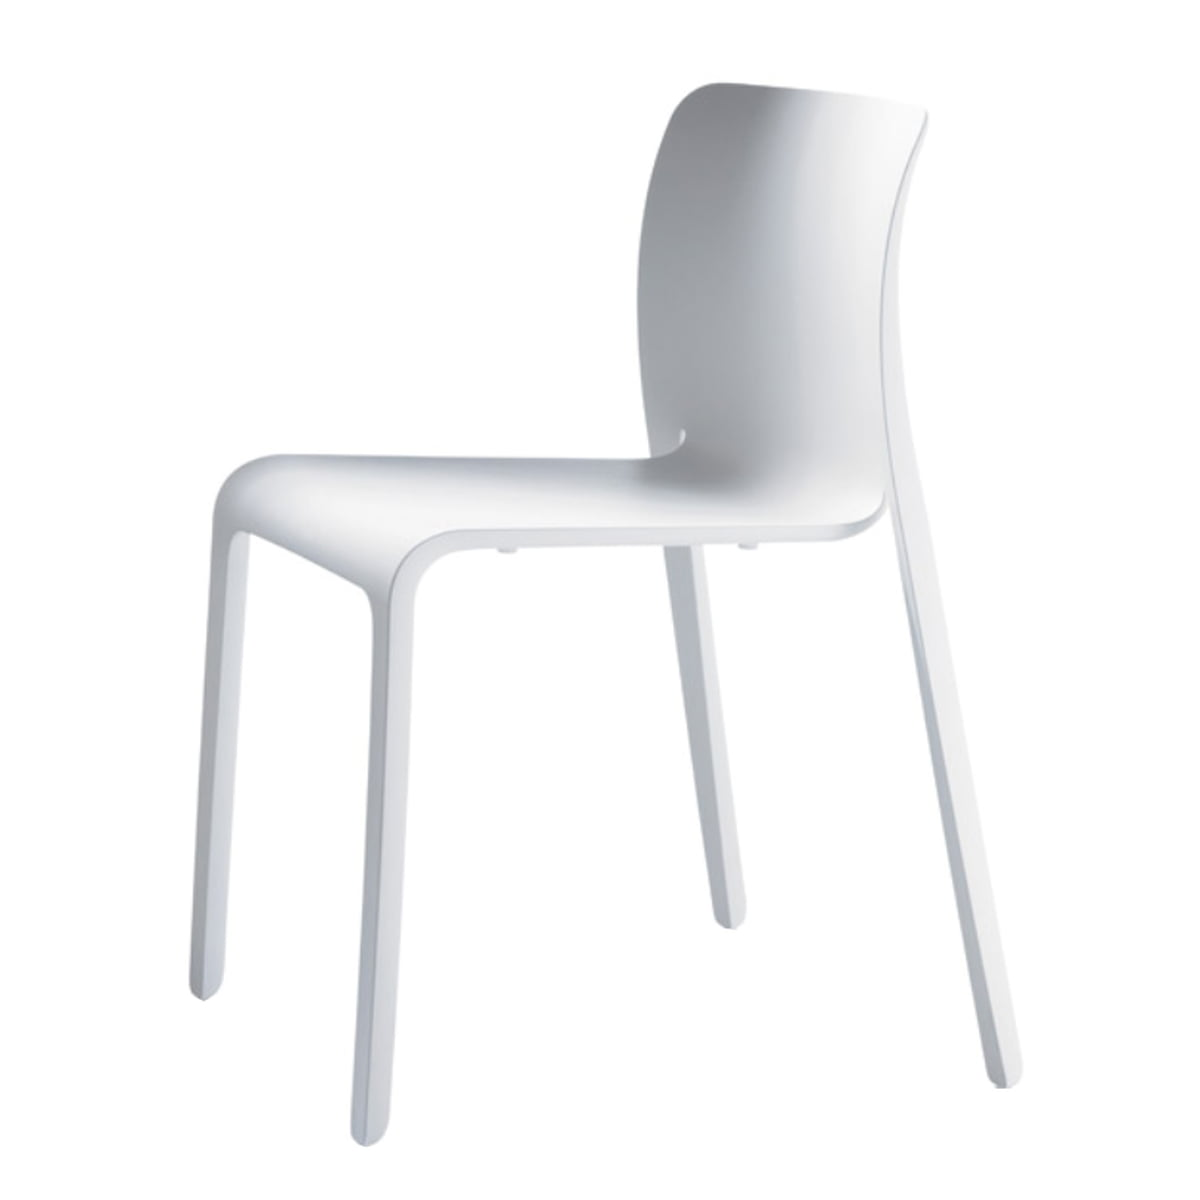 Buy The First Chair By Magis Online